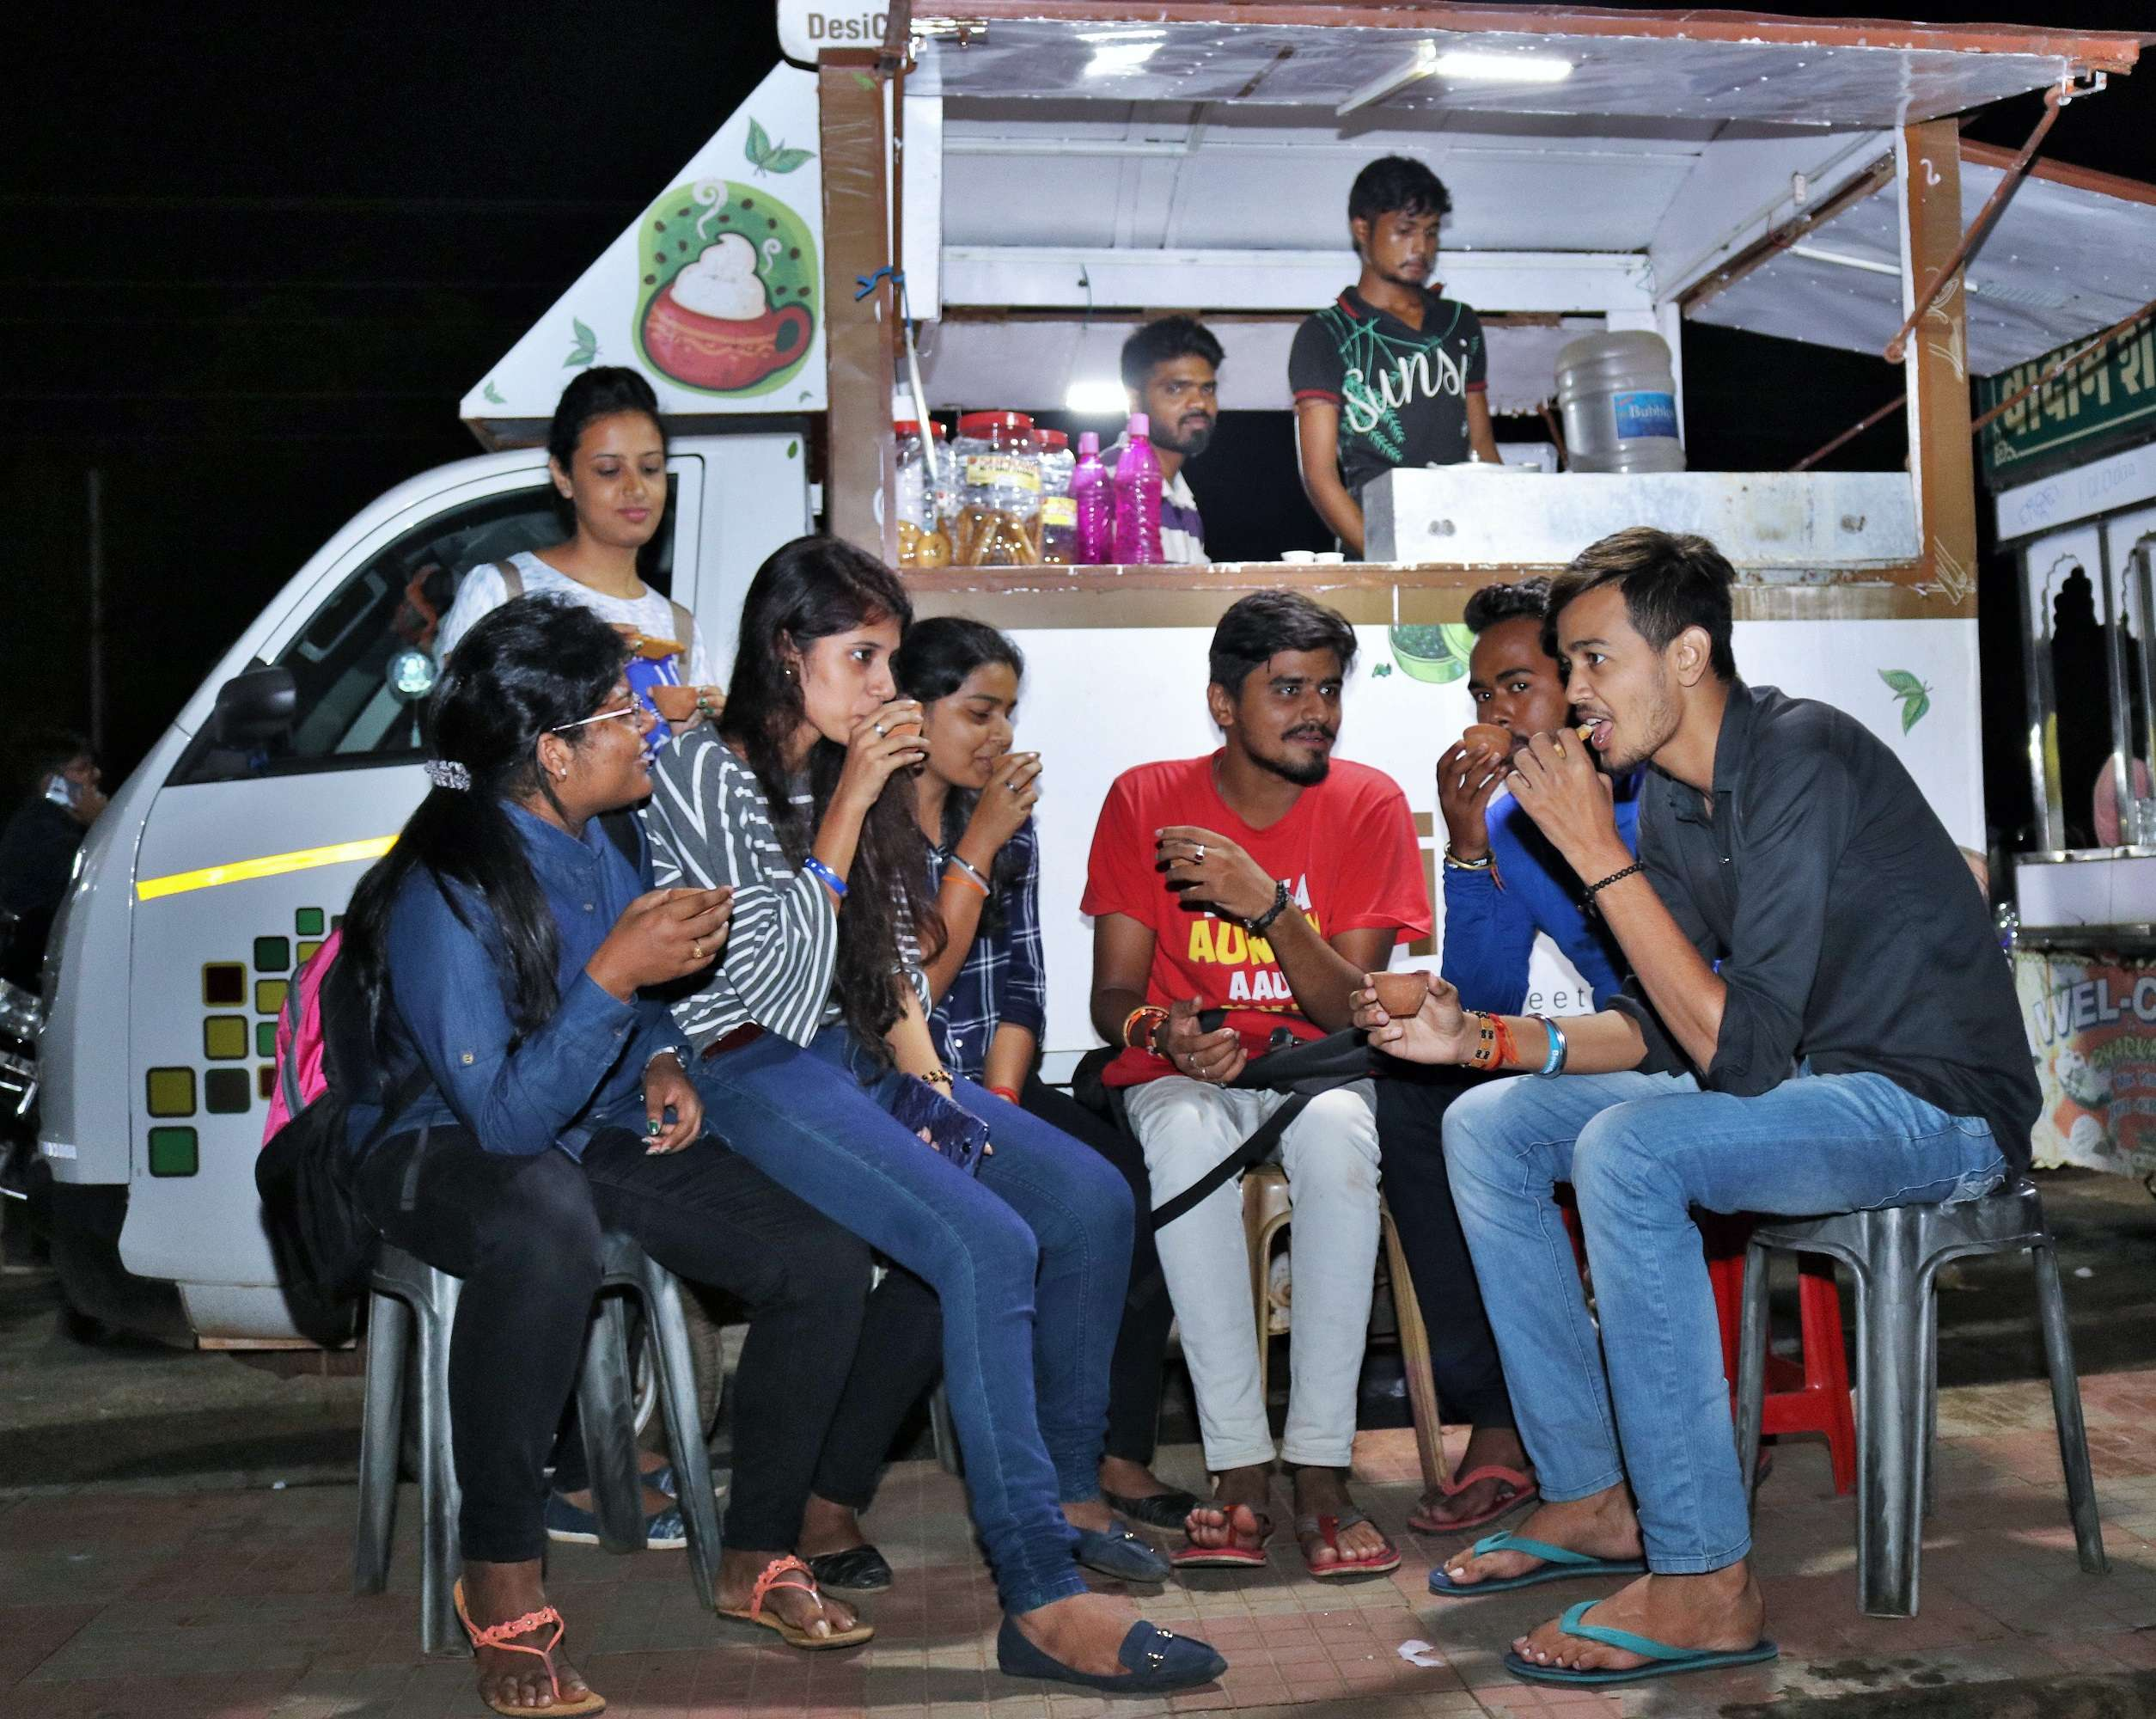 youngsters gossiping over tea - Copy